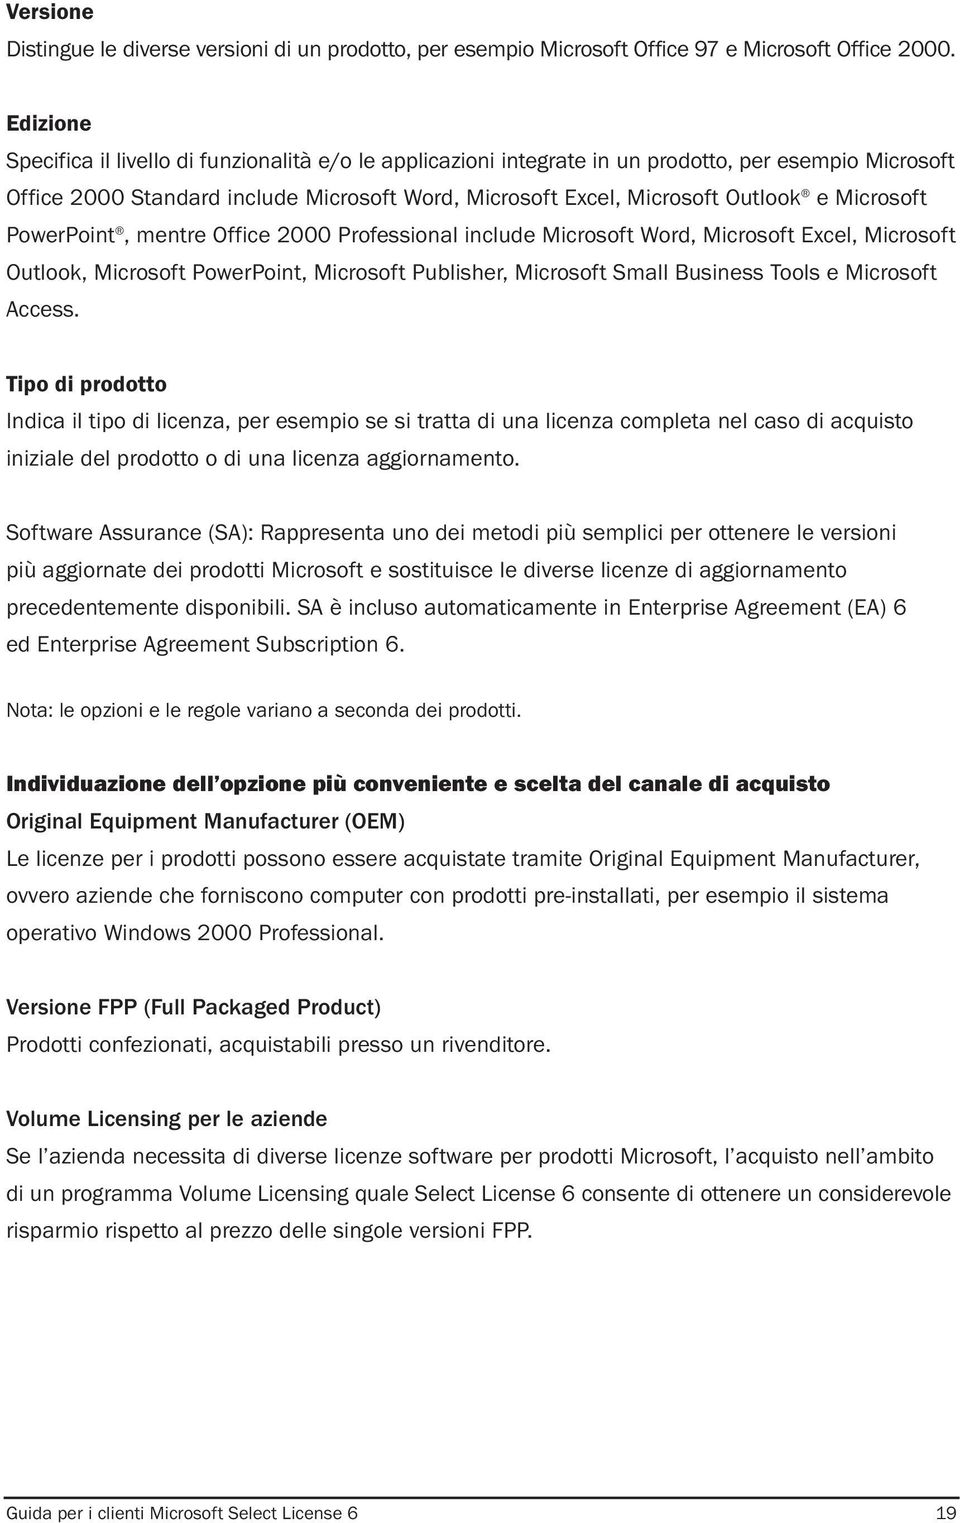 Microsoft PowerPoint, mentre Office 2000 Professional include Microsoft Word, Microsoft Excel, Microsoft Outlook, Microsoft PowerPoint, Microsoft Publisher, Microsoft Small Business Tools e Microsoft